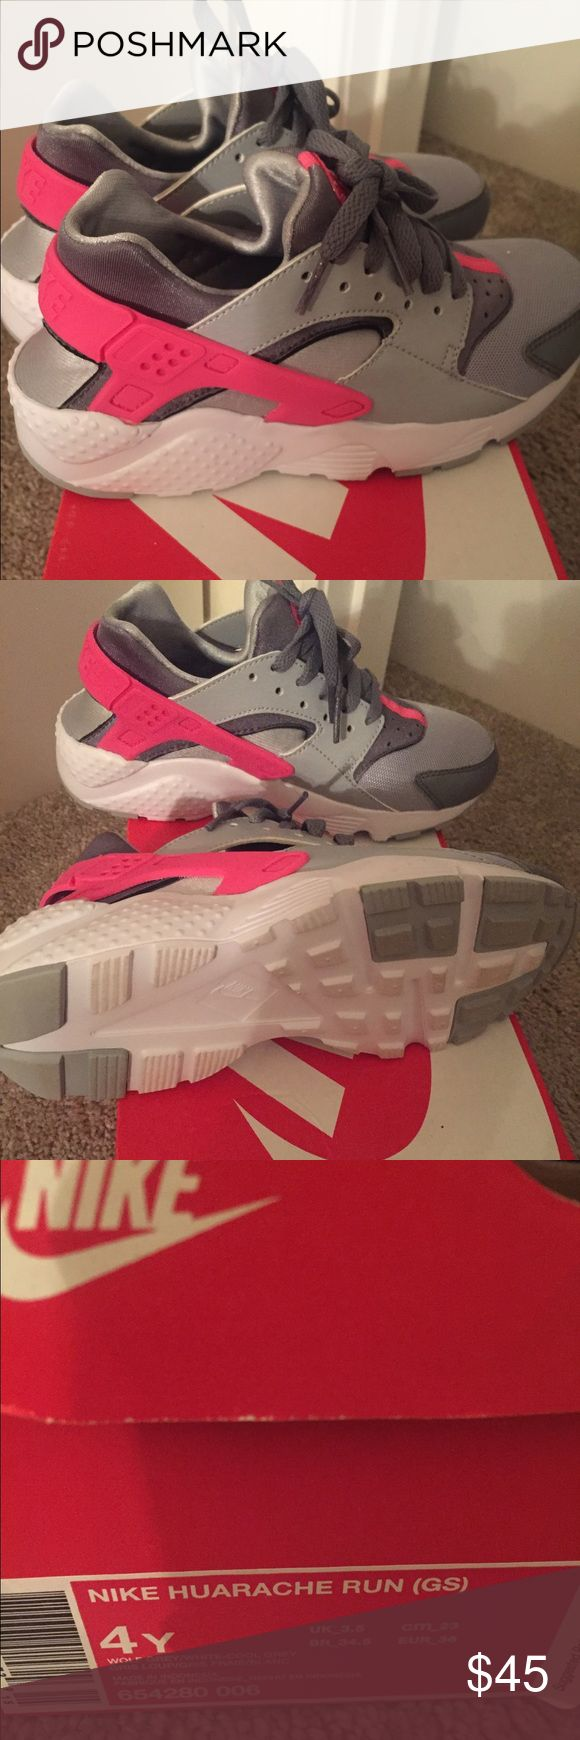 Nike Huarache Run Girls Selected Style: Wolf Grey/White/Cool Grey/Hyper Pink Size: 4 grade school girls Nike Shoes Athletic Shoes